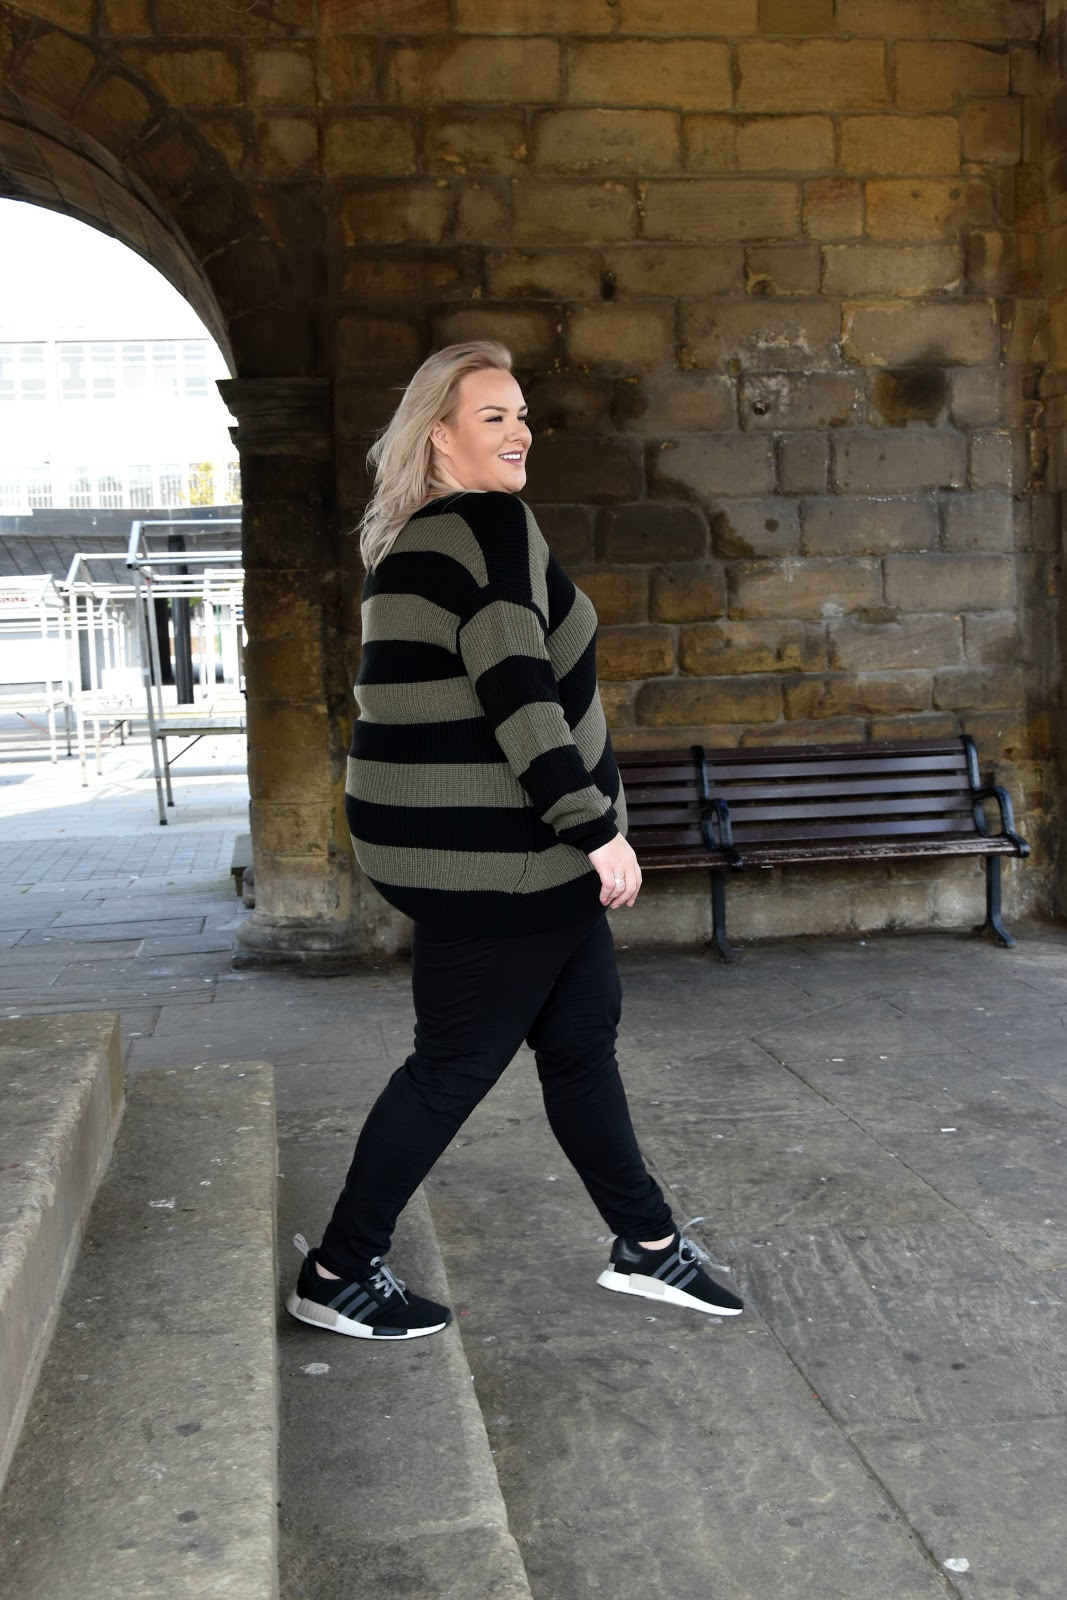 WhatLauraLoves Yours Clothing Plus Size Blogger 5 Positive Things To Do Daily